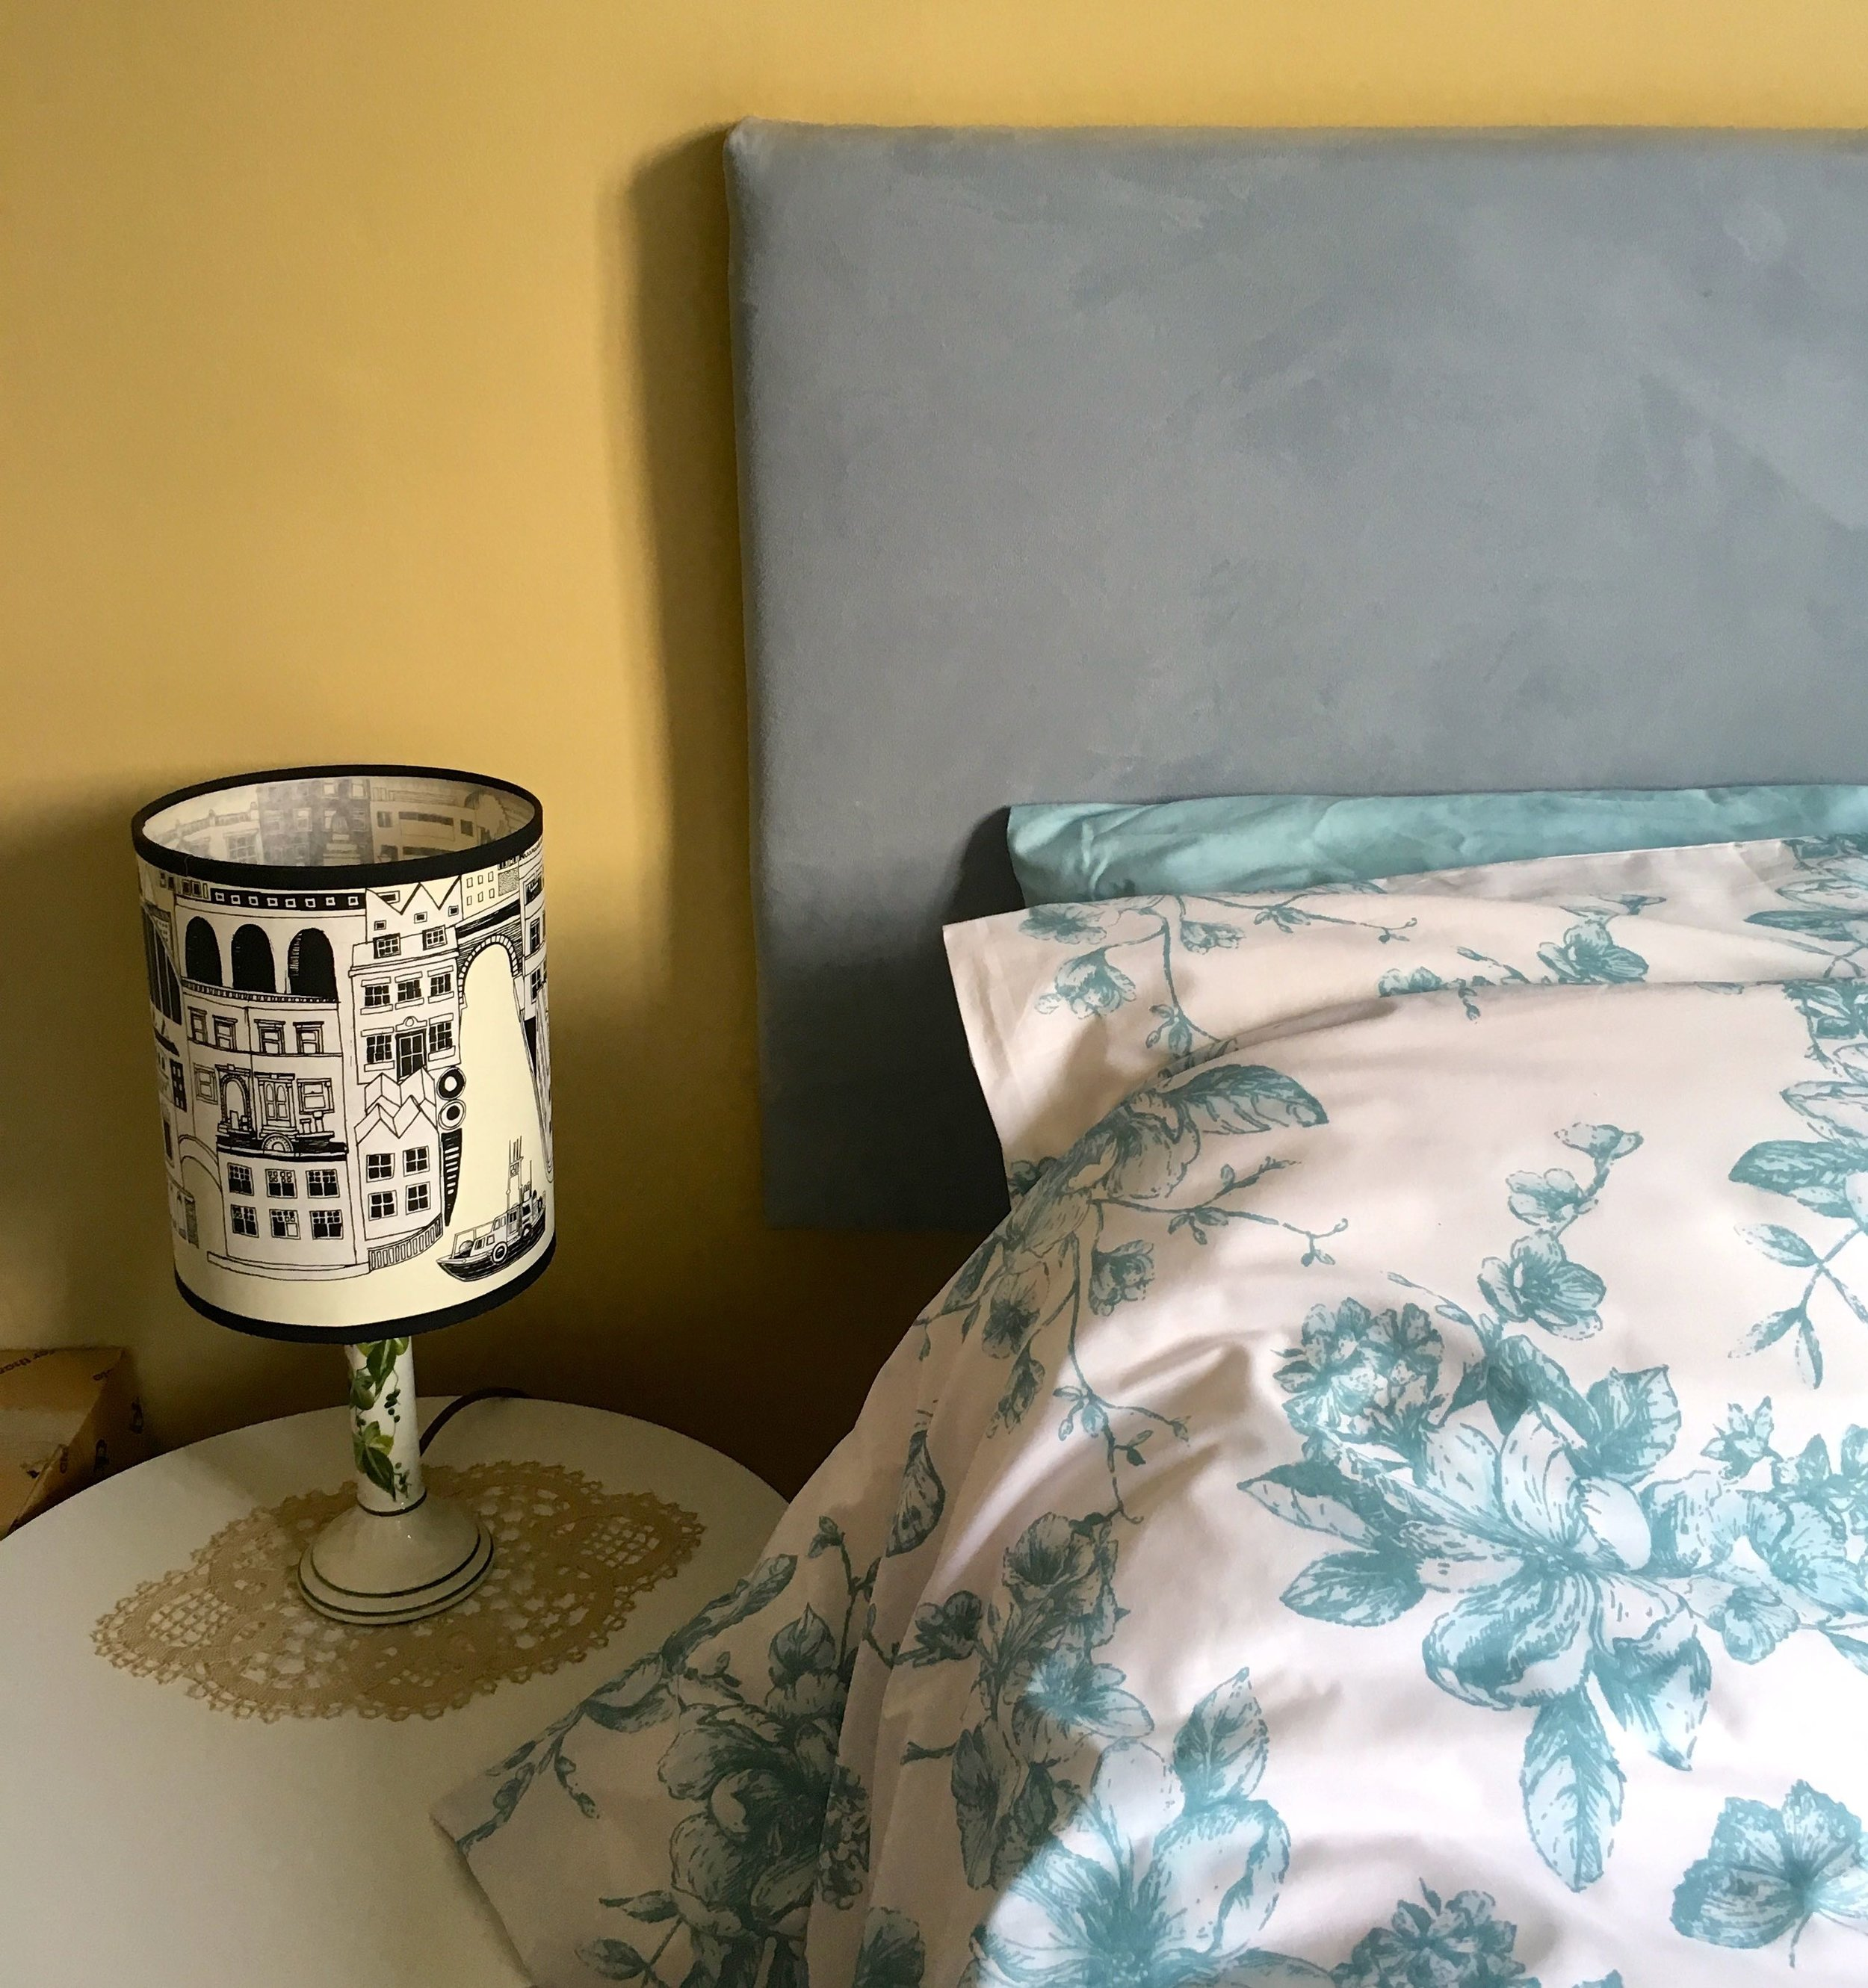 teal bedding that tones very well with the headboard and existing contrasting bedlinen